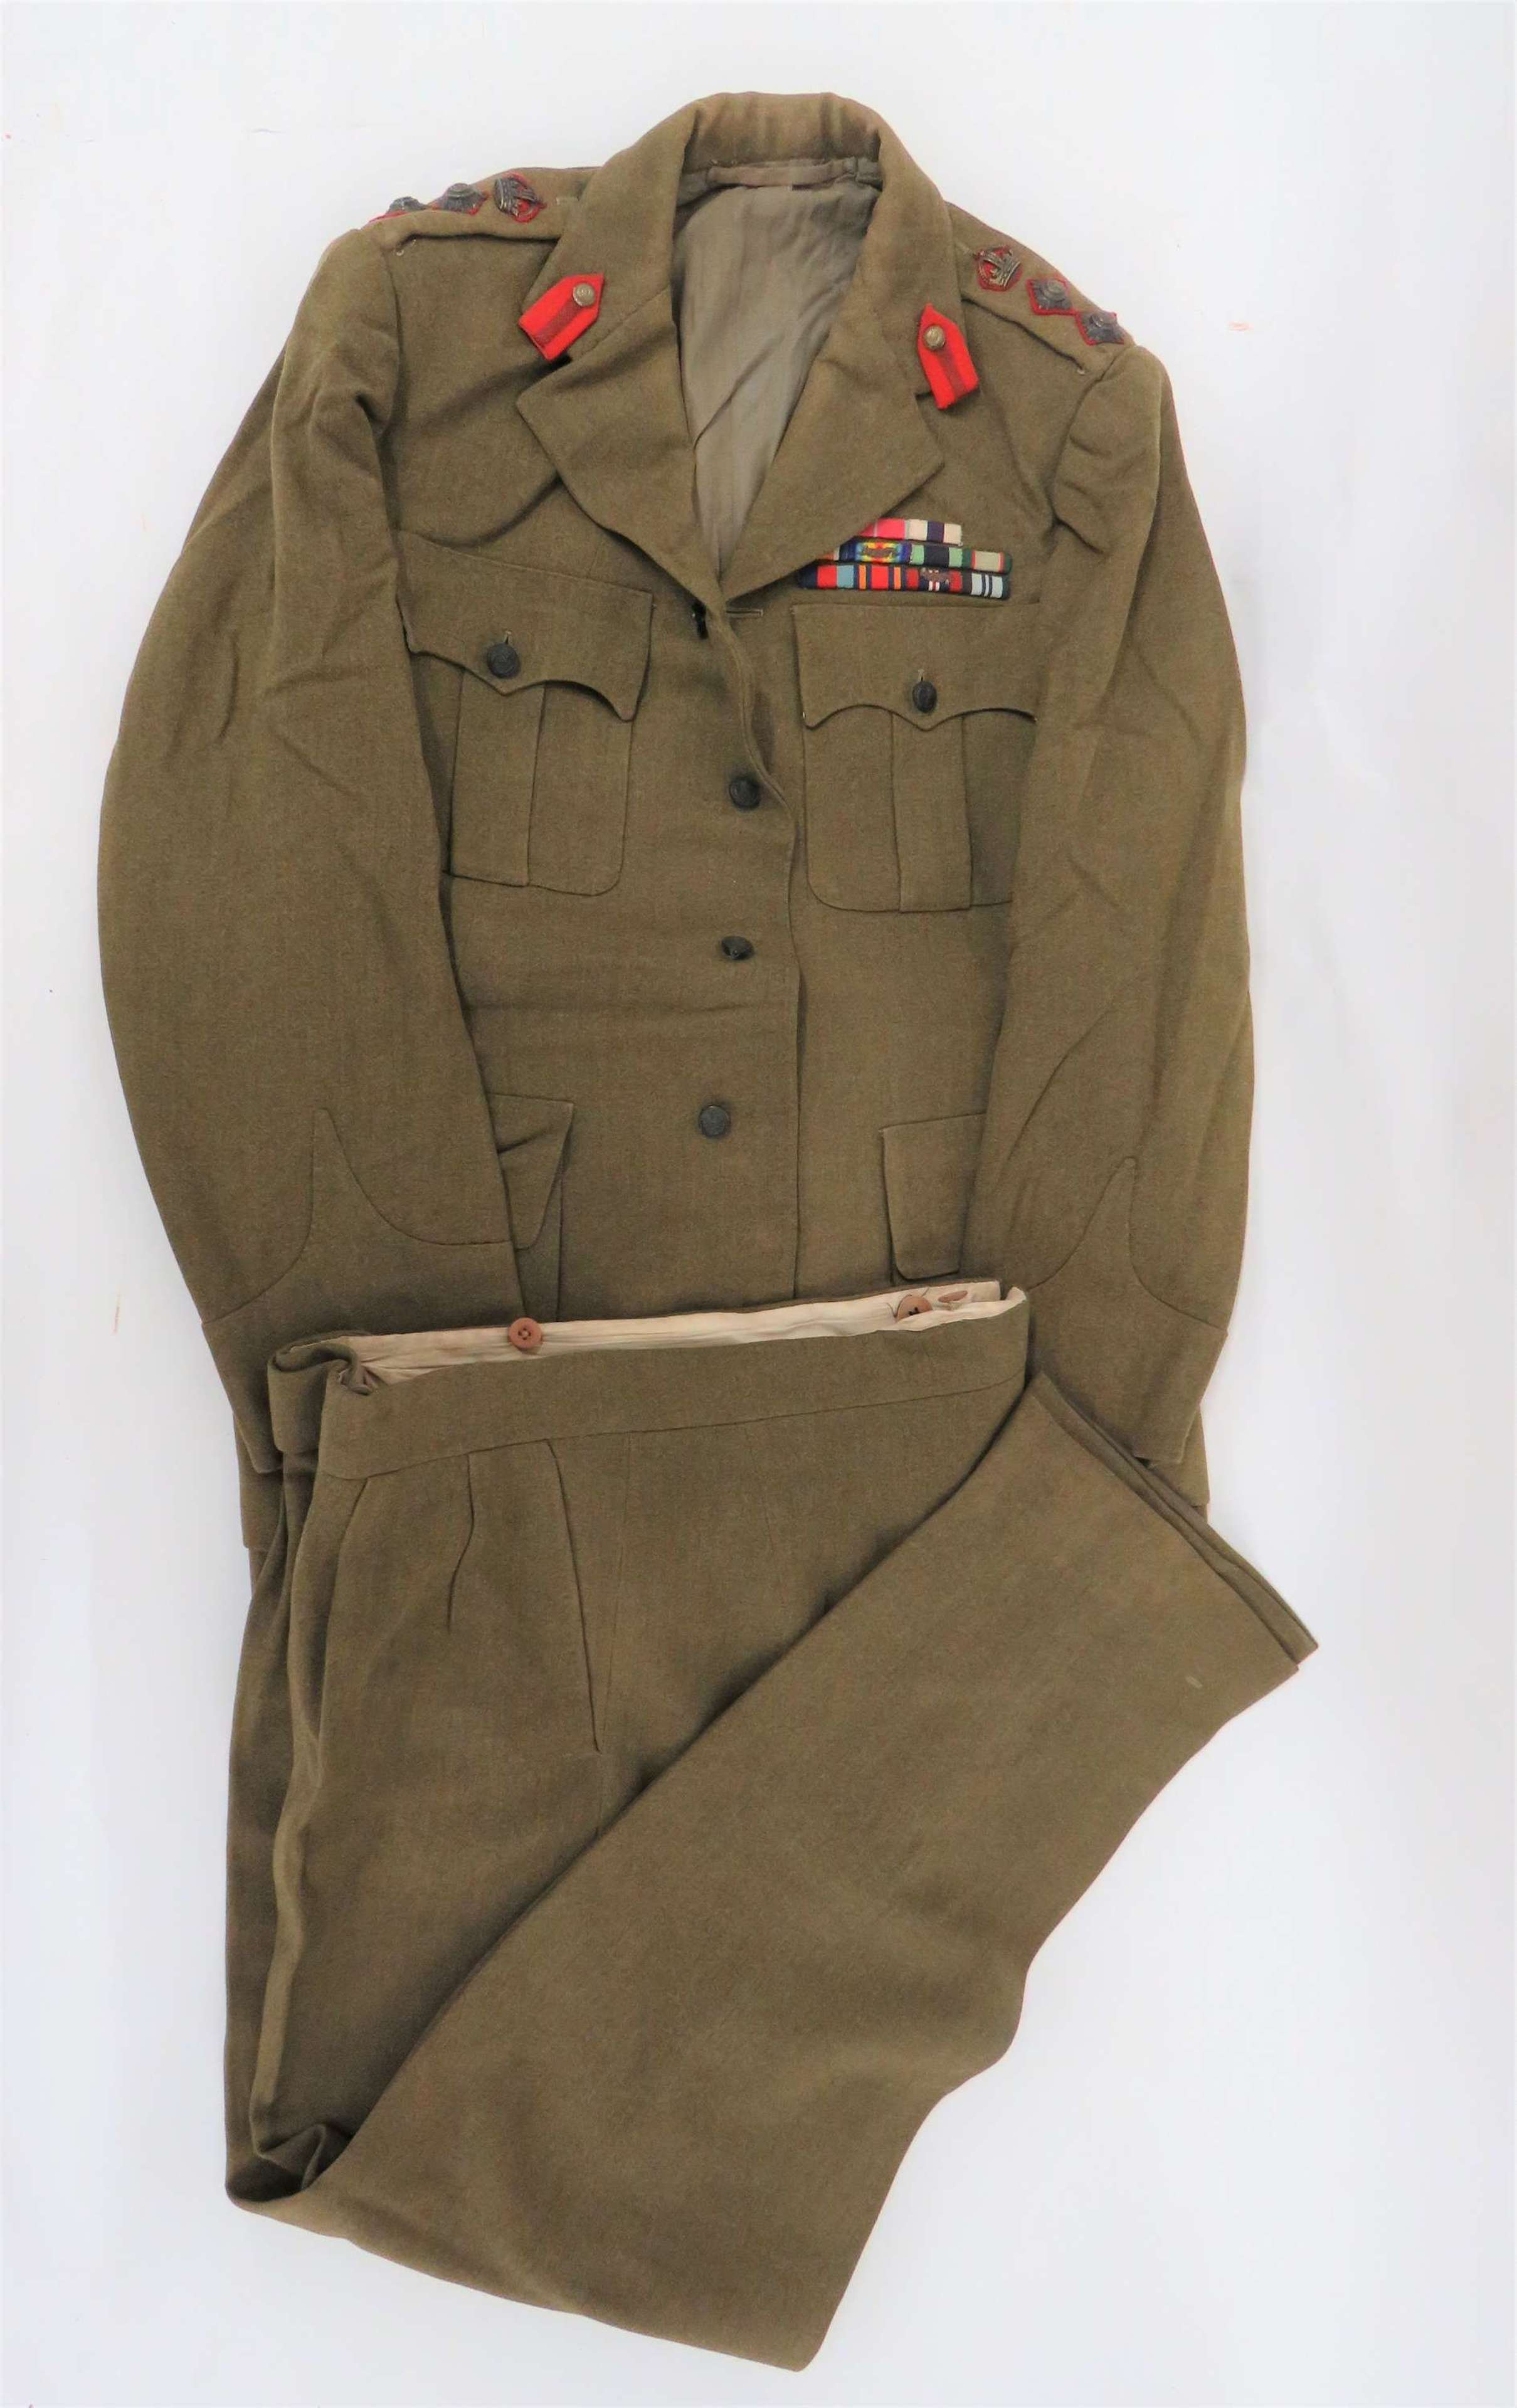 Superb Staff Officers Service Tunic and Trousers